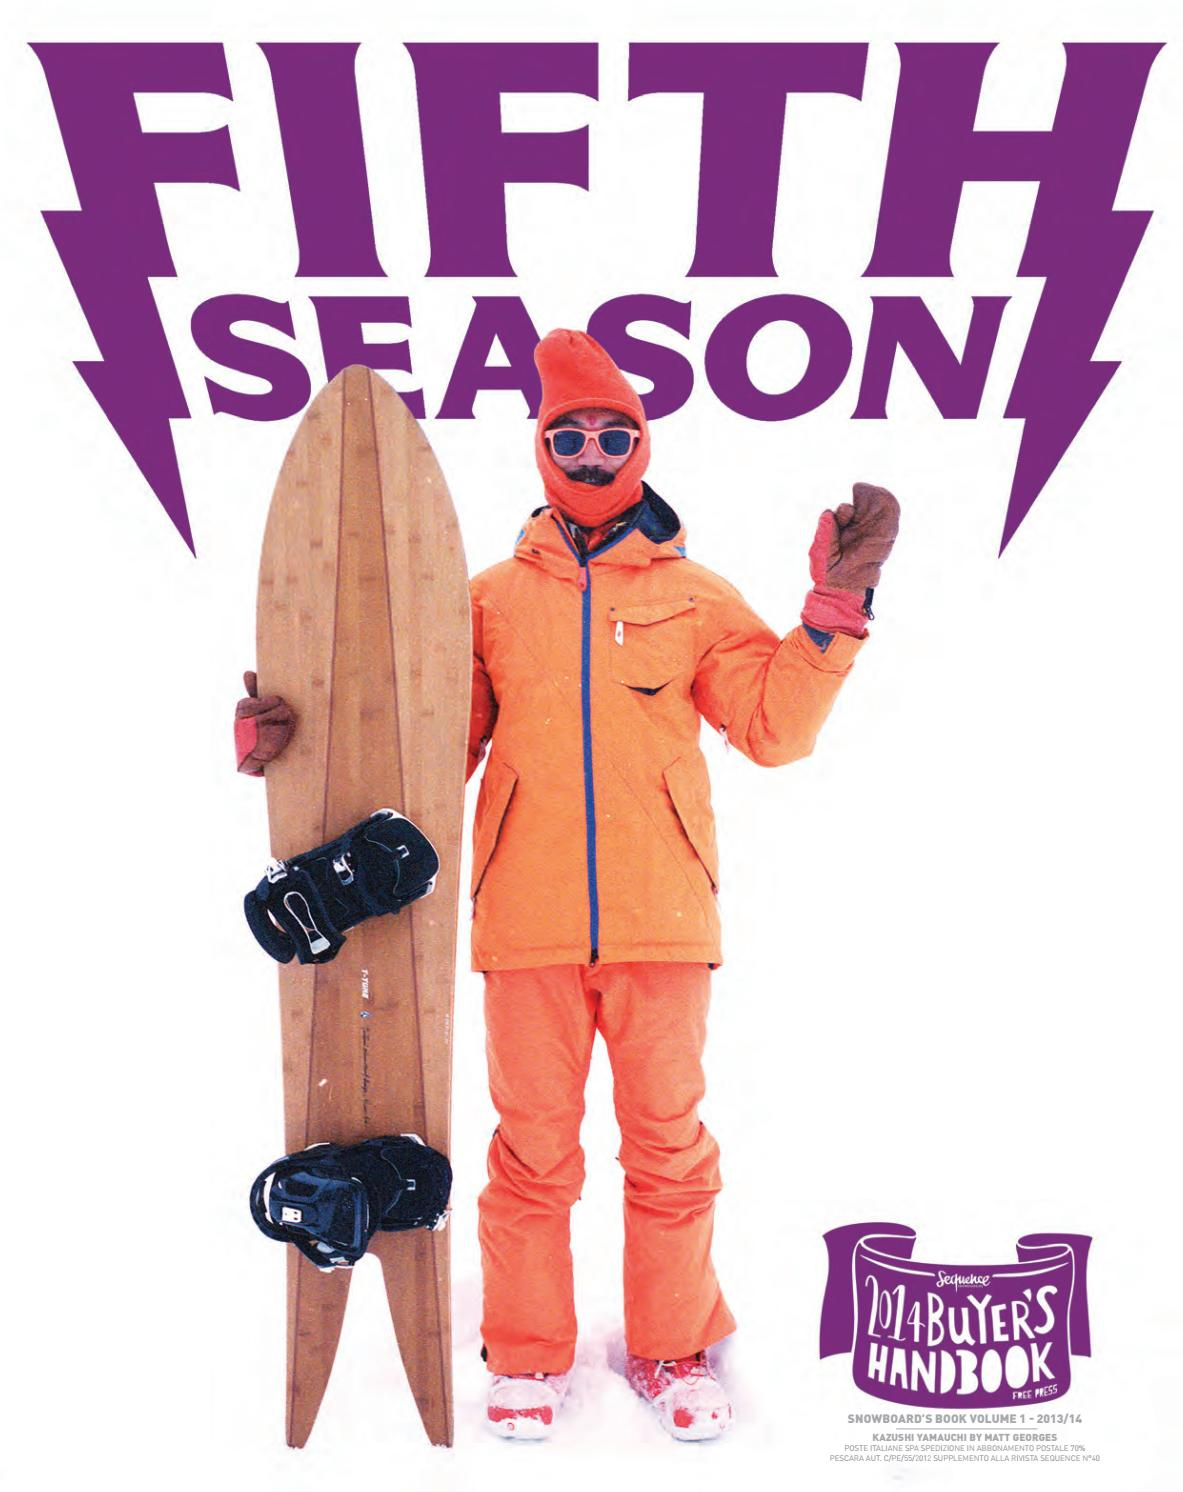 Fifth Season Buyer s Guide 2014 by Hand Communication - issuu 3992db8e355e